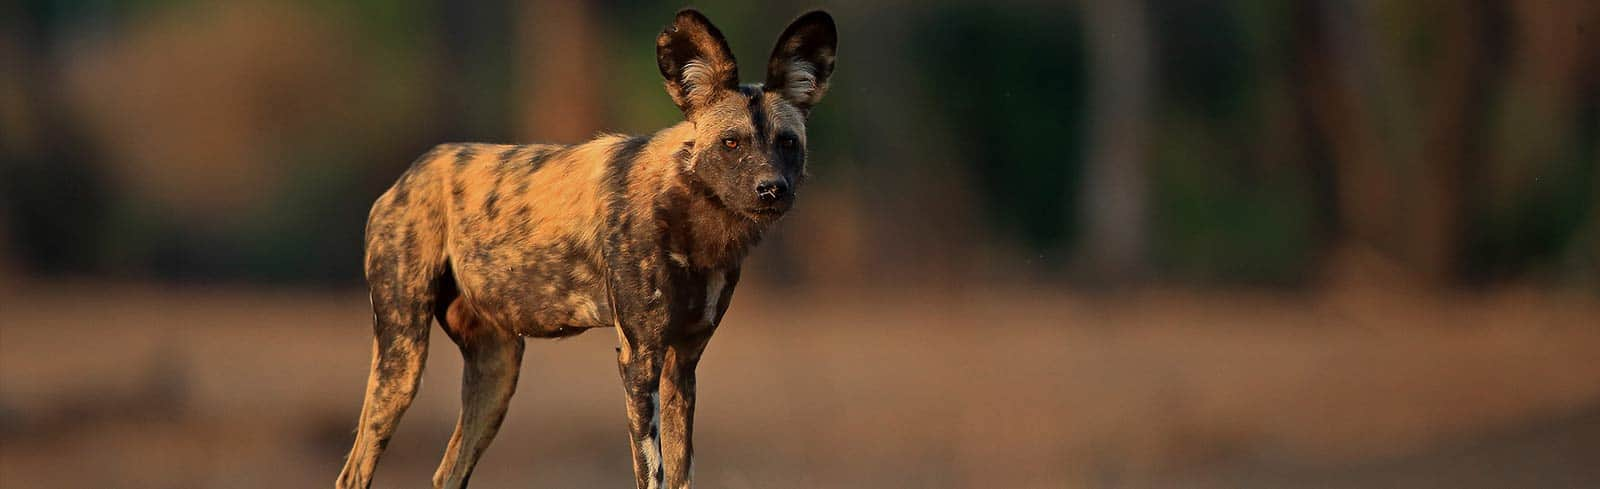 Painted Dog Bret Chrman Wildlife Photography